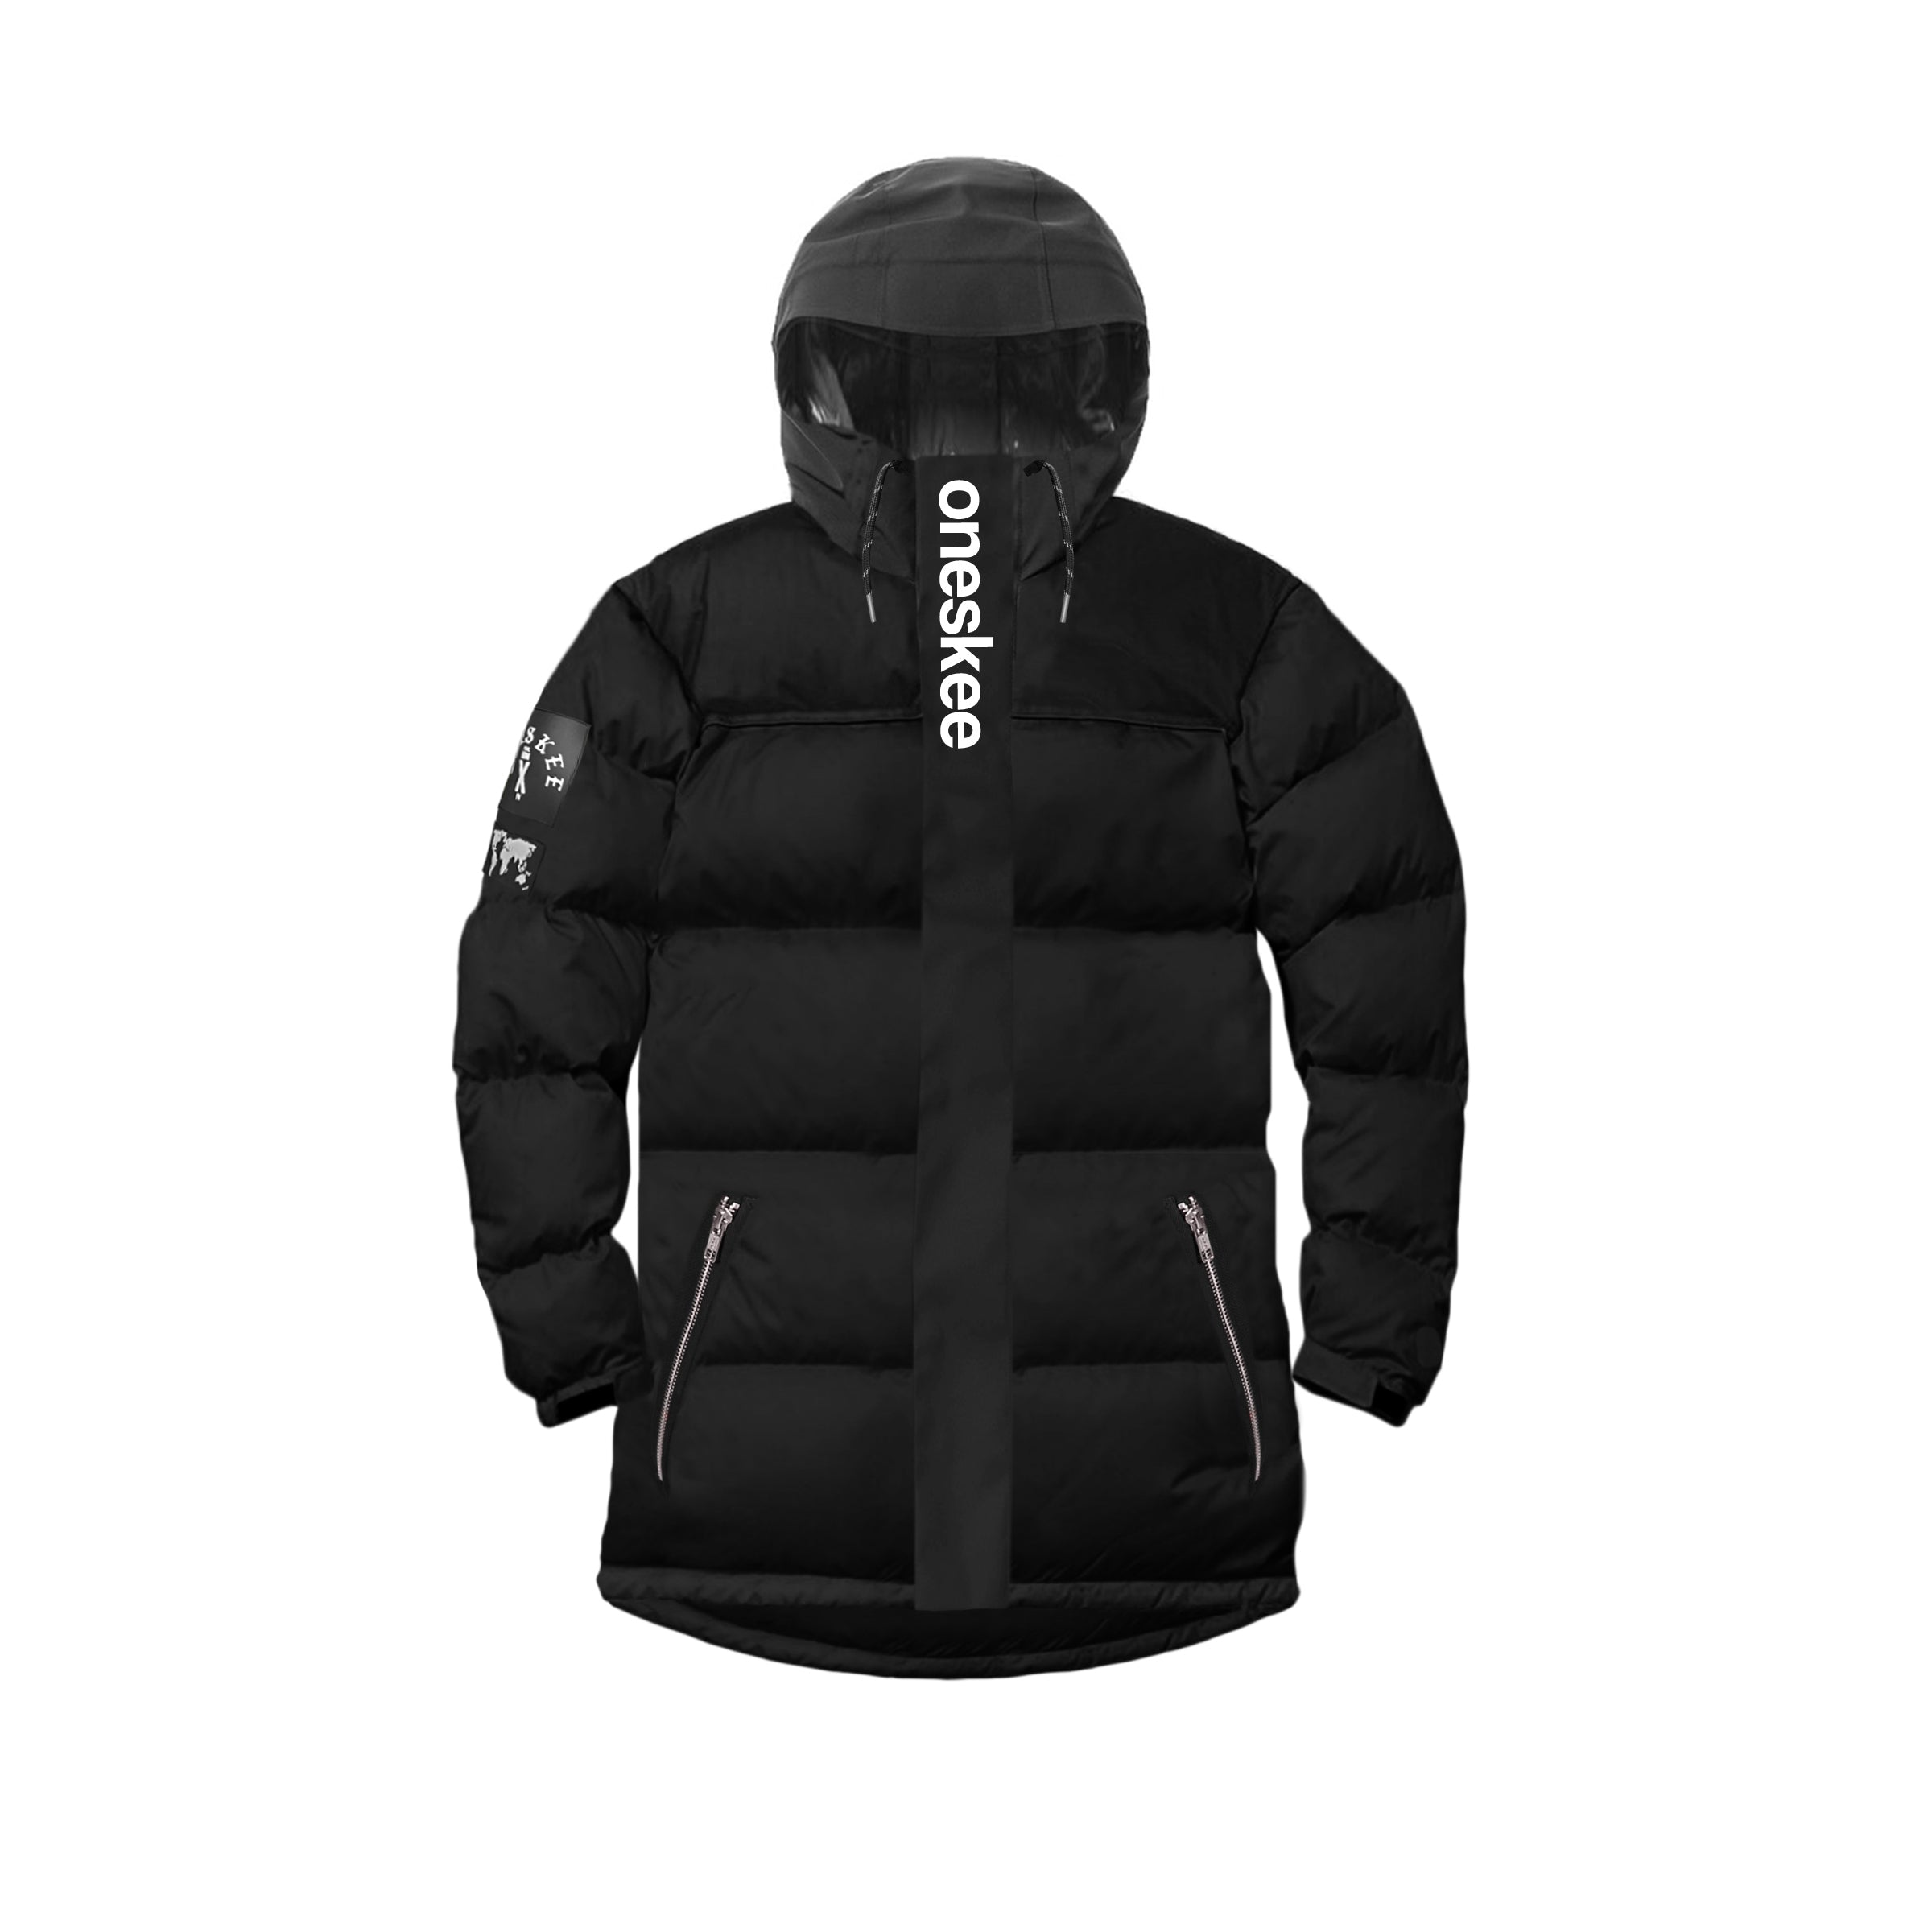 Technical Puffer Jacket - Black image 9